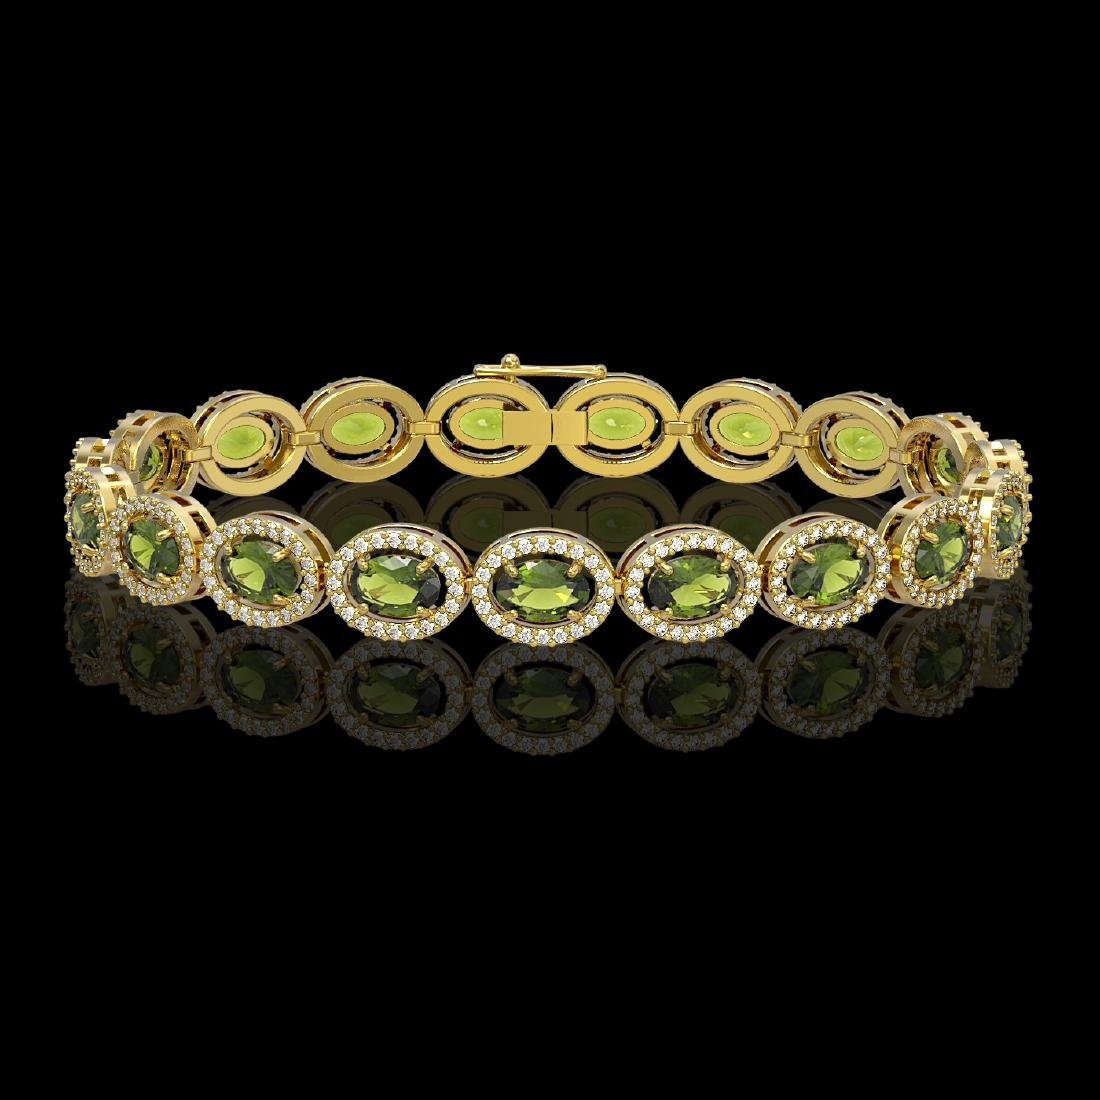 13.87 CTW Tourmaline & Diamond Halo Bracelet 10K Yellow